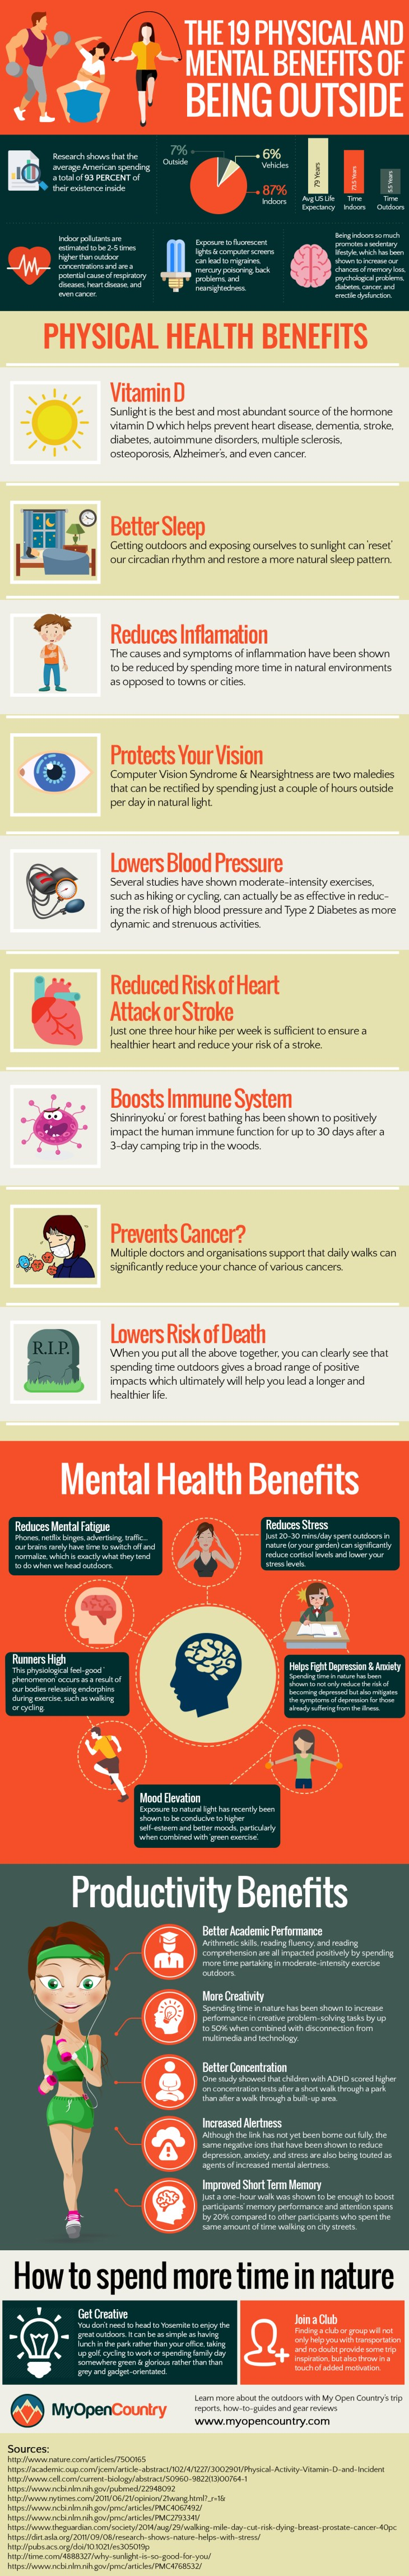 HealthBenefitsOutside_infographic